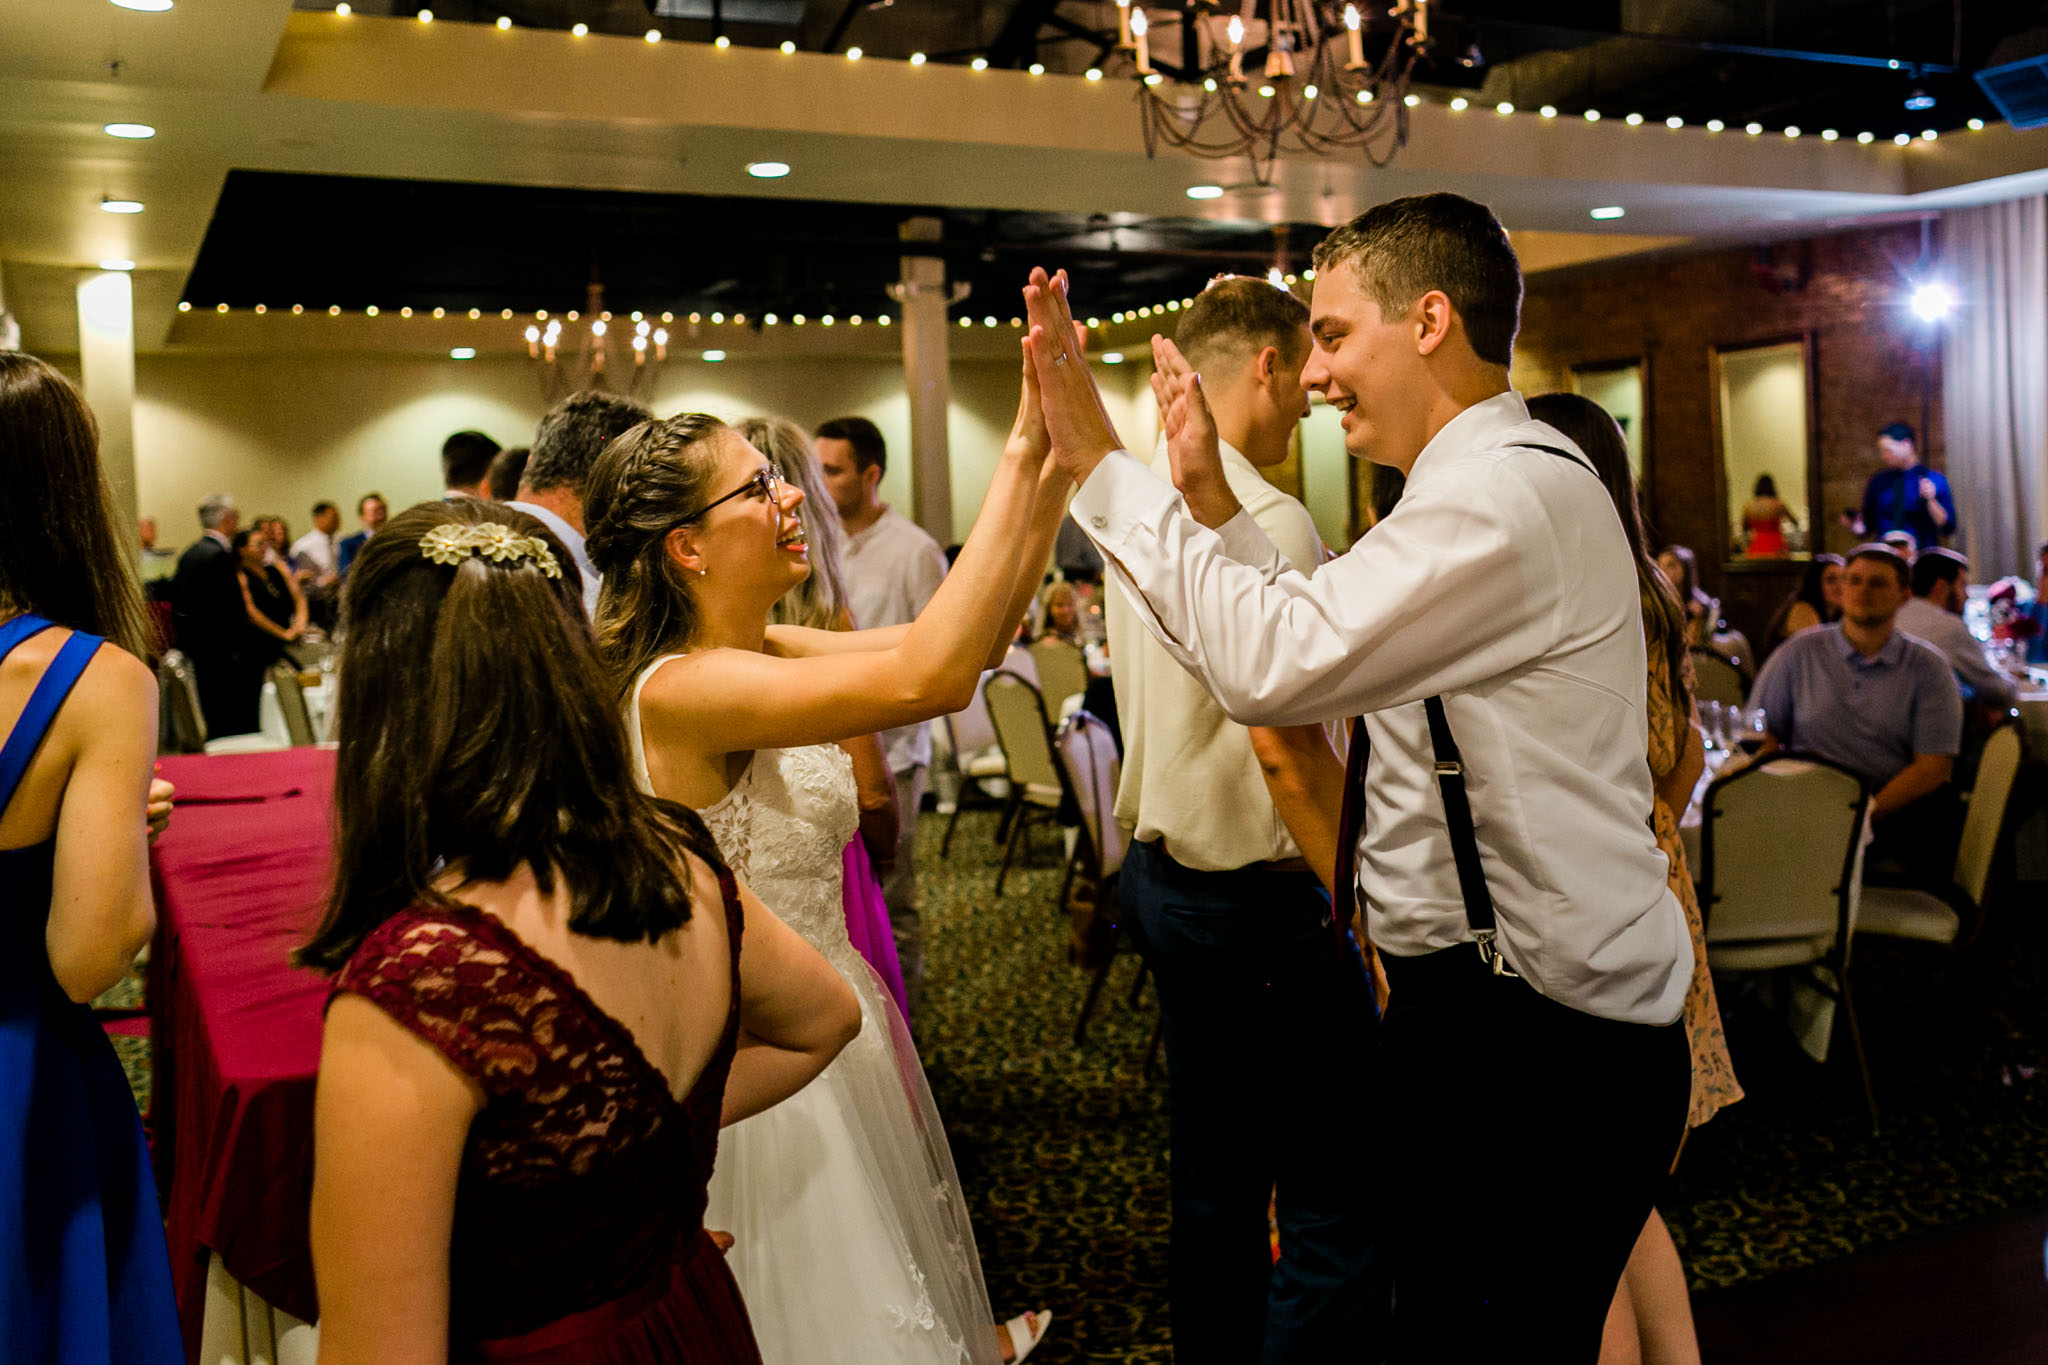 Bride and groom giving each other high fives |People dancing at wedding reception at Royal Banquet Conference Center | Raleigh Wedding Photographer | By G. Lin Photography